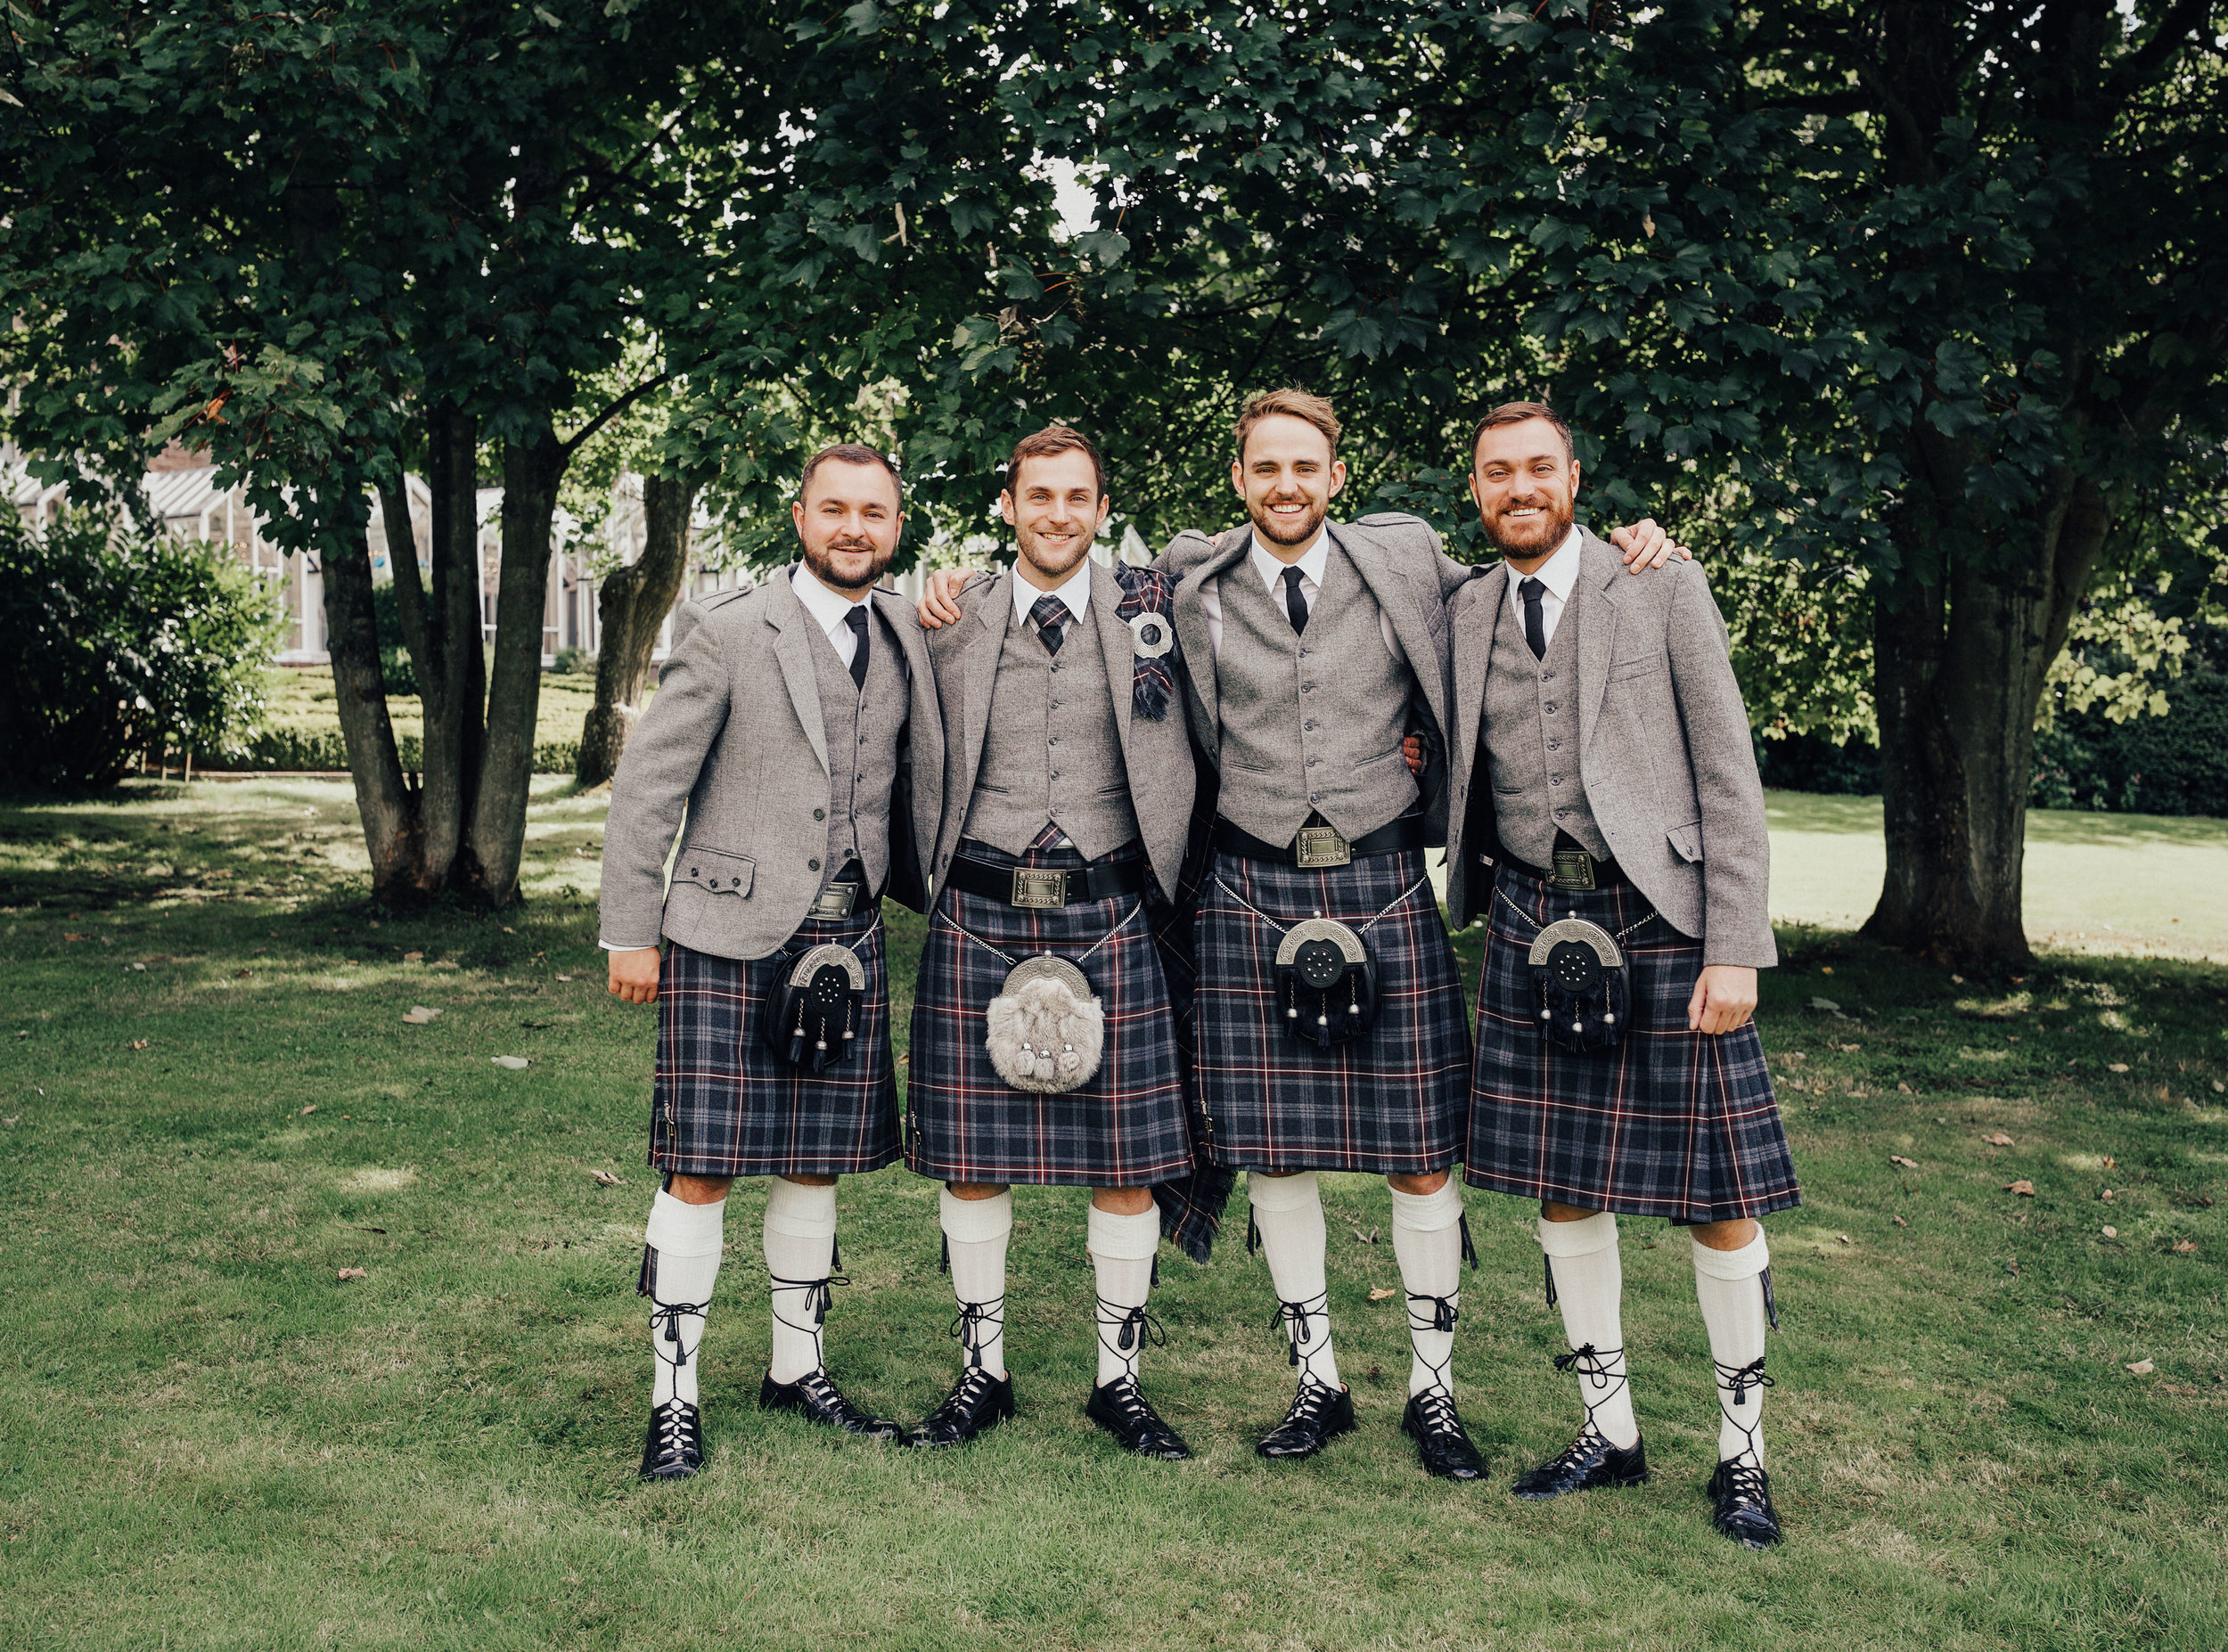 BYRE_AT_INCHYRA_WEDDING_PHOTOGRAPHER_PJ_PHILLIPS_PHOTOGRAPHY_KAYLEIGH_ANDREW_51.jpg